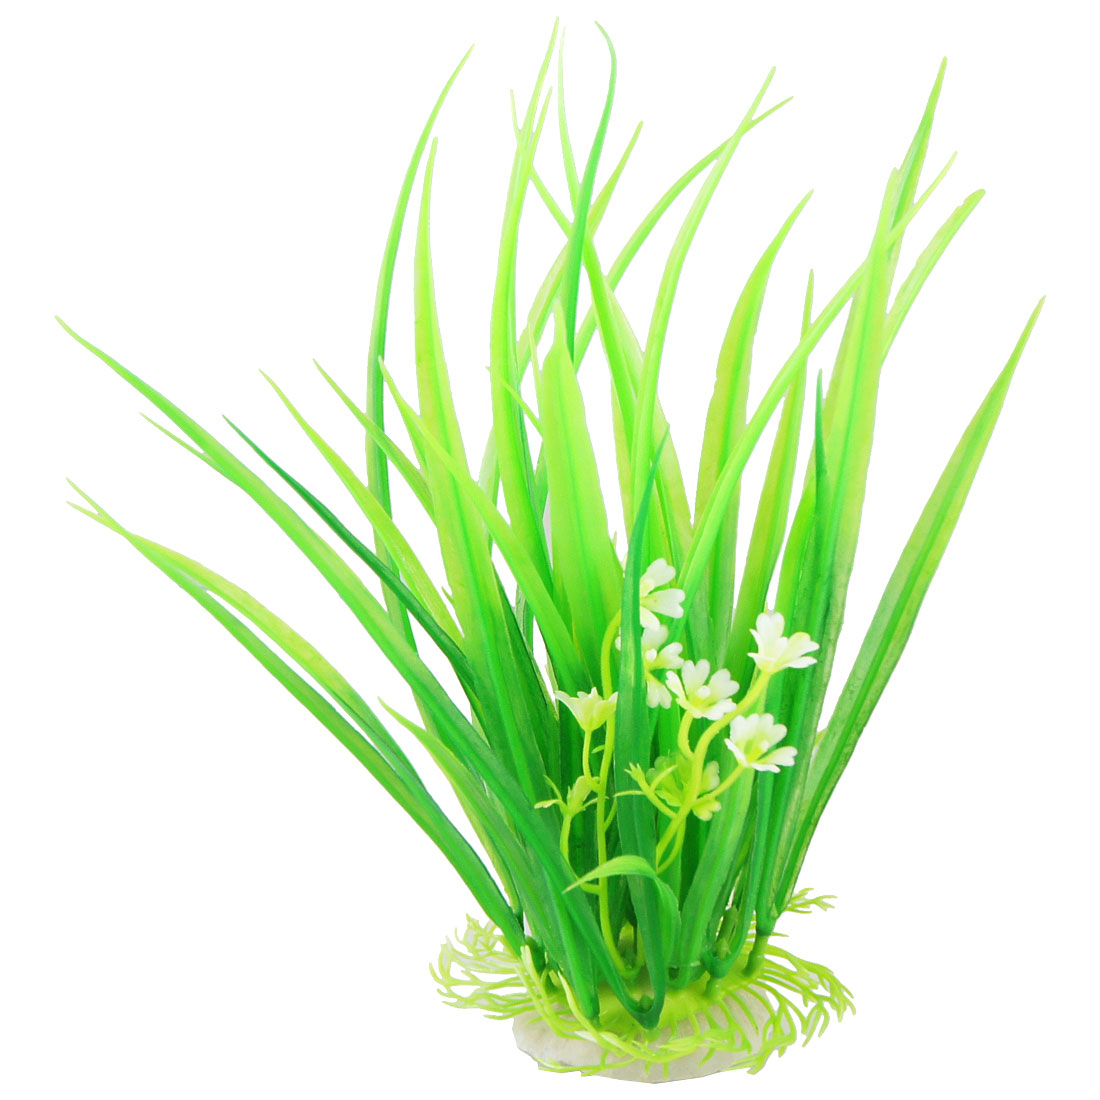 "8.3"" Tall Green Simulated Plastic Tree Water Grasses Ornament for Fish Tank"